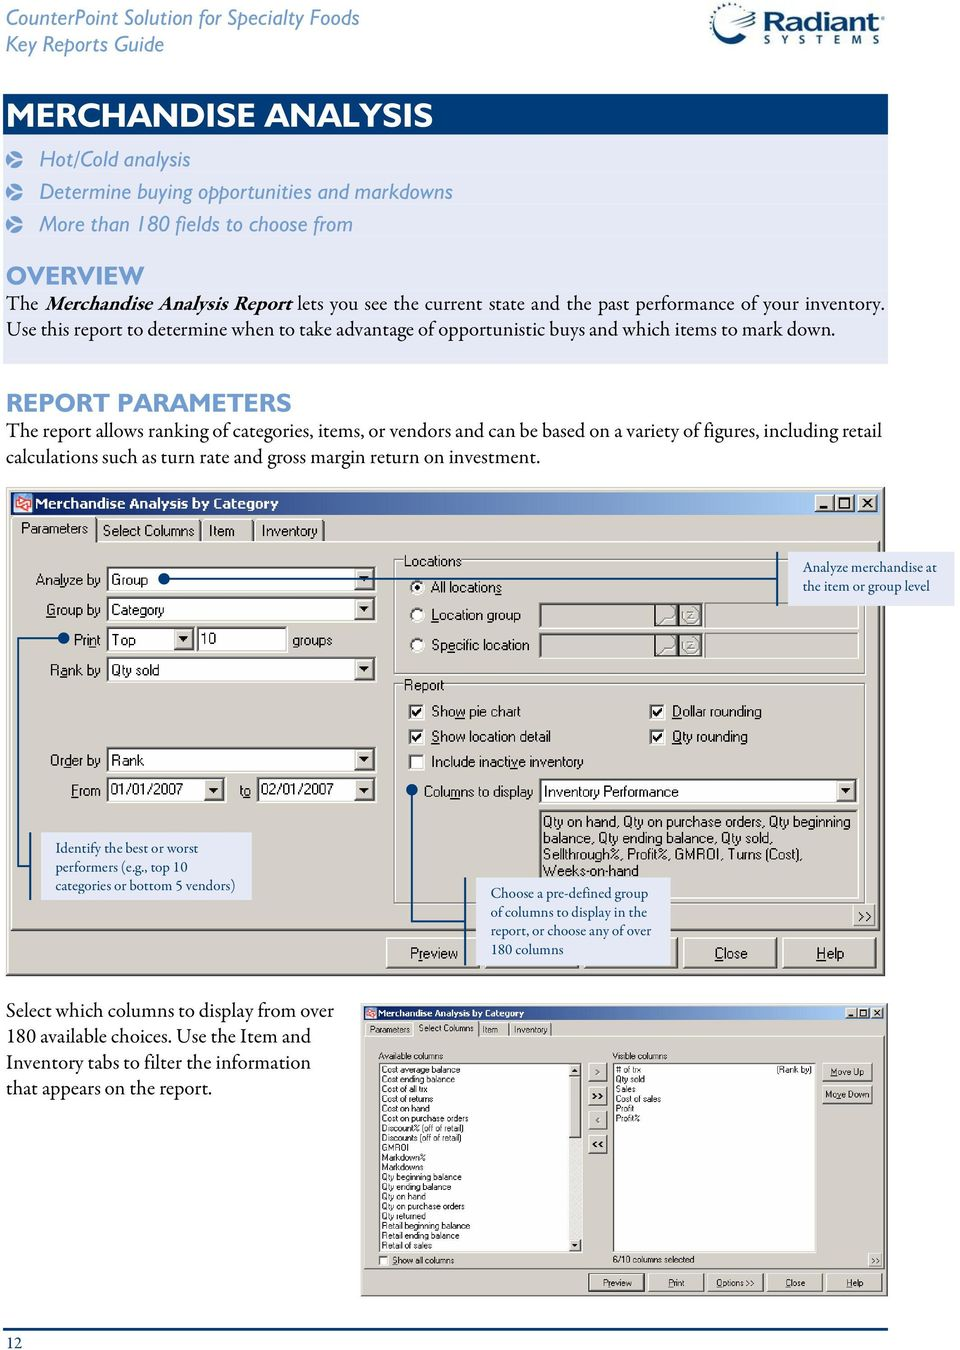 INTRODUCTION COUNTERPOINT REPORTS. KEY REPORTS This report guide ...